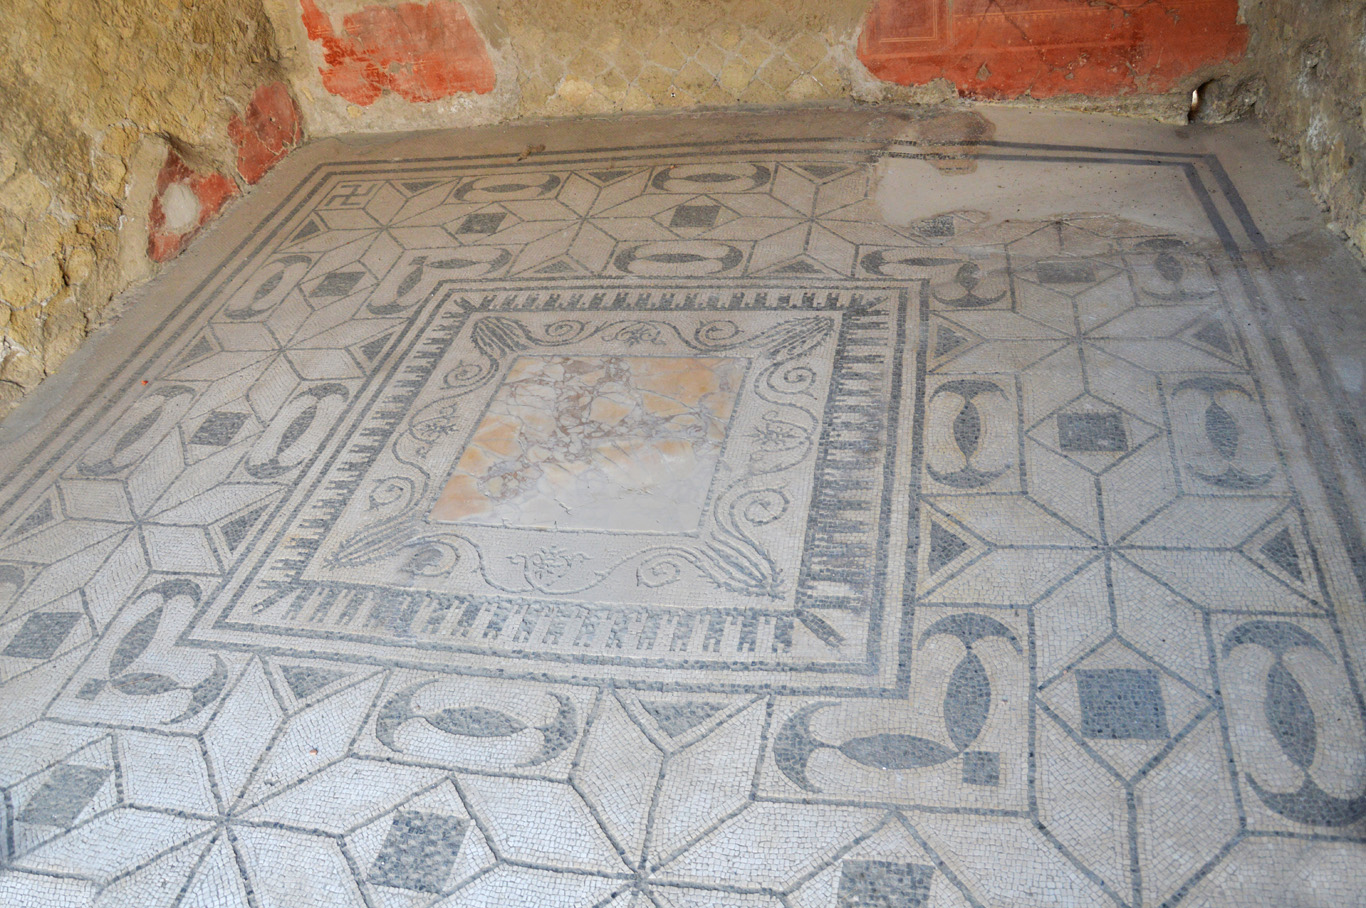 Mosaic on the floor of one of the houses in Herculaneum